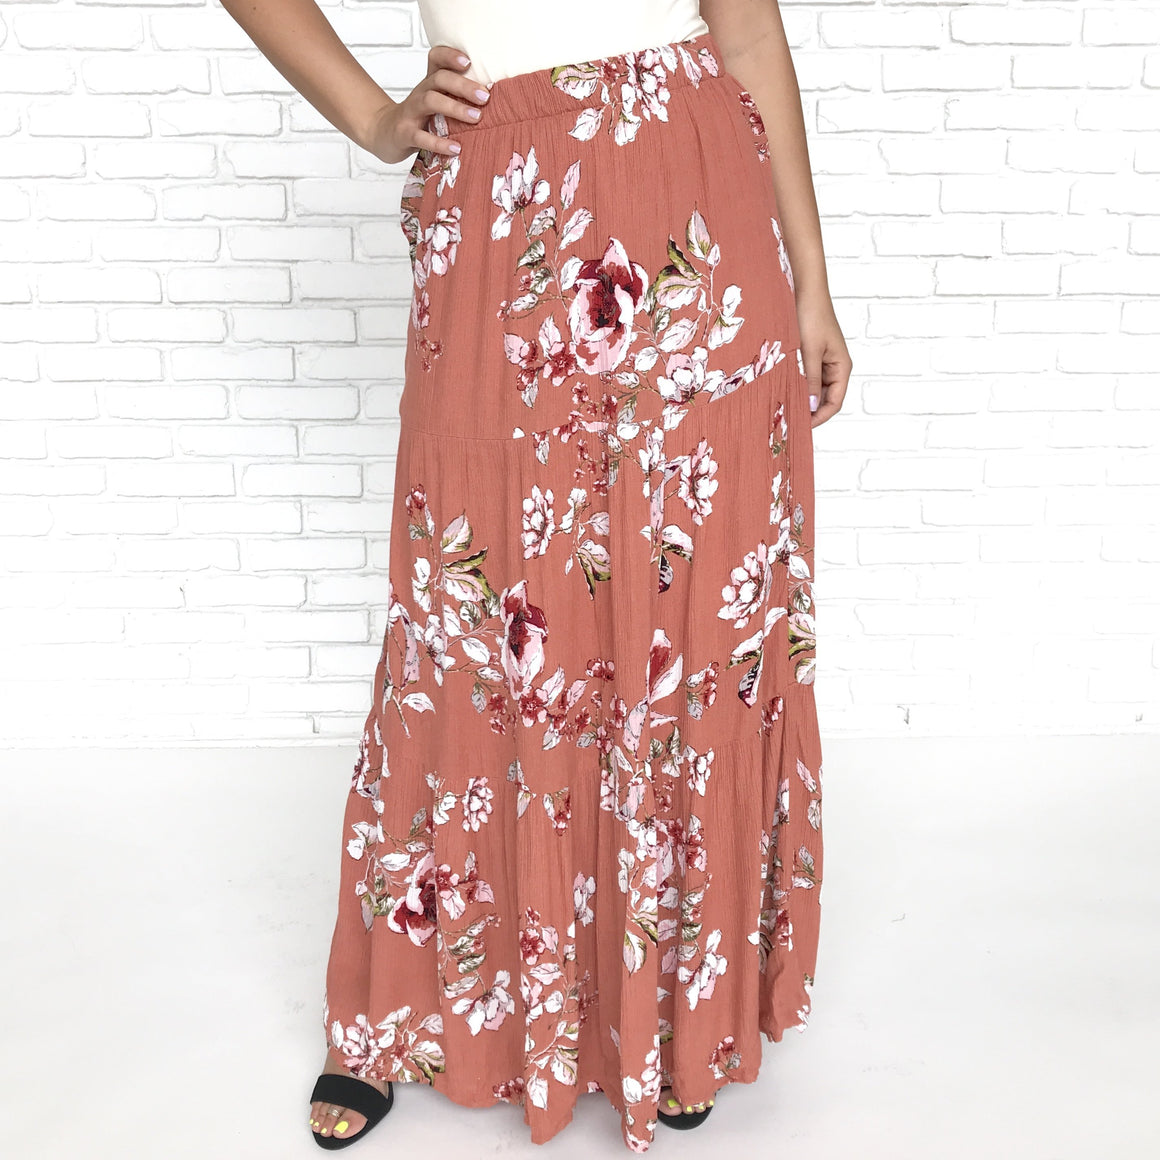 Falling For Floral Maxi Skirt in Rust - Dainty Hooligan